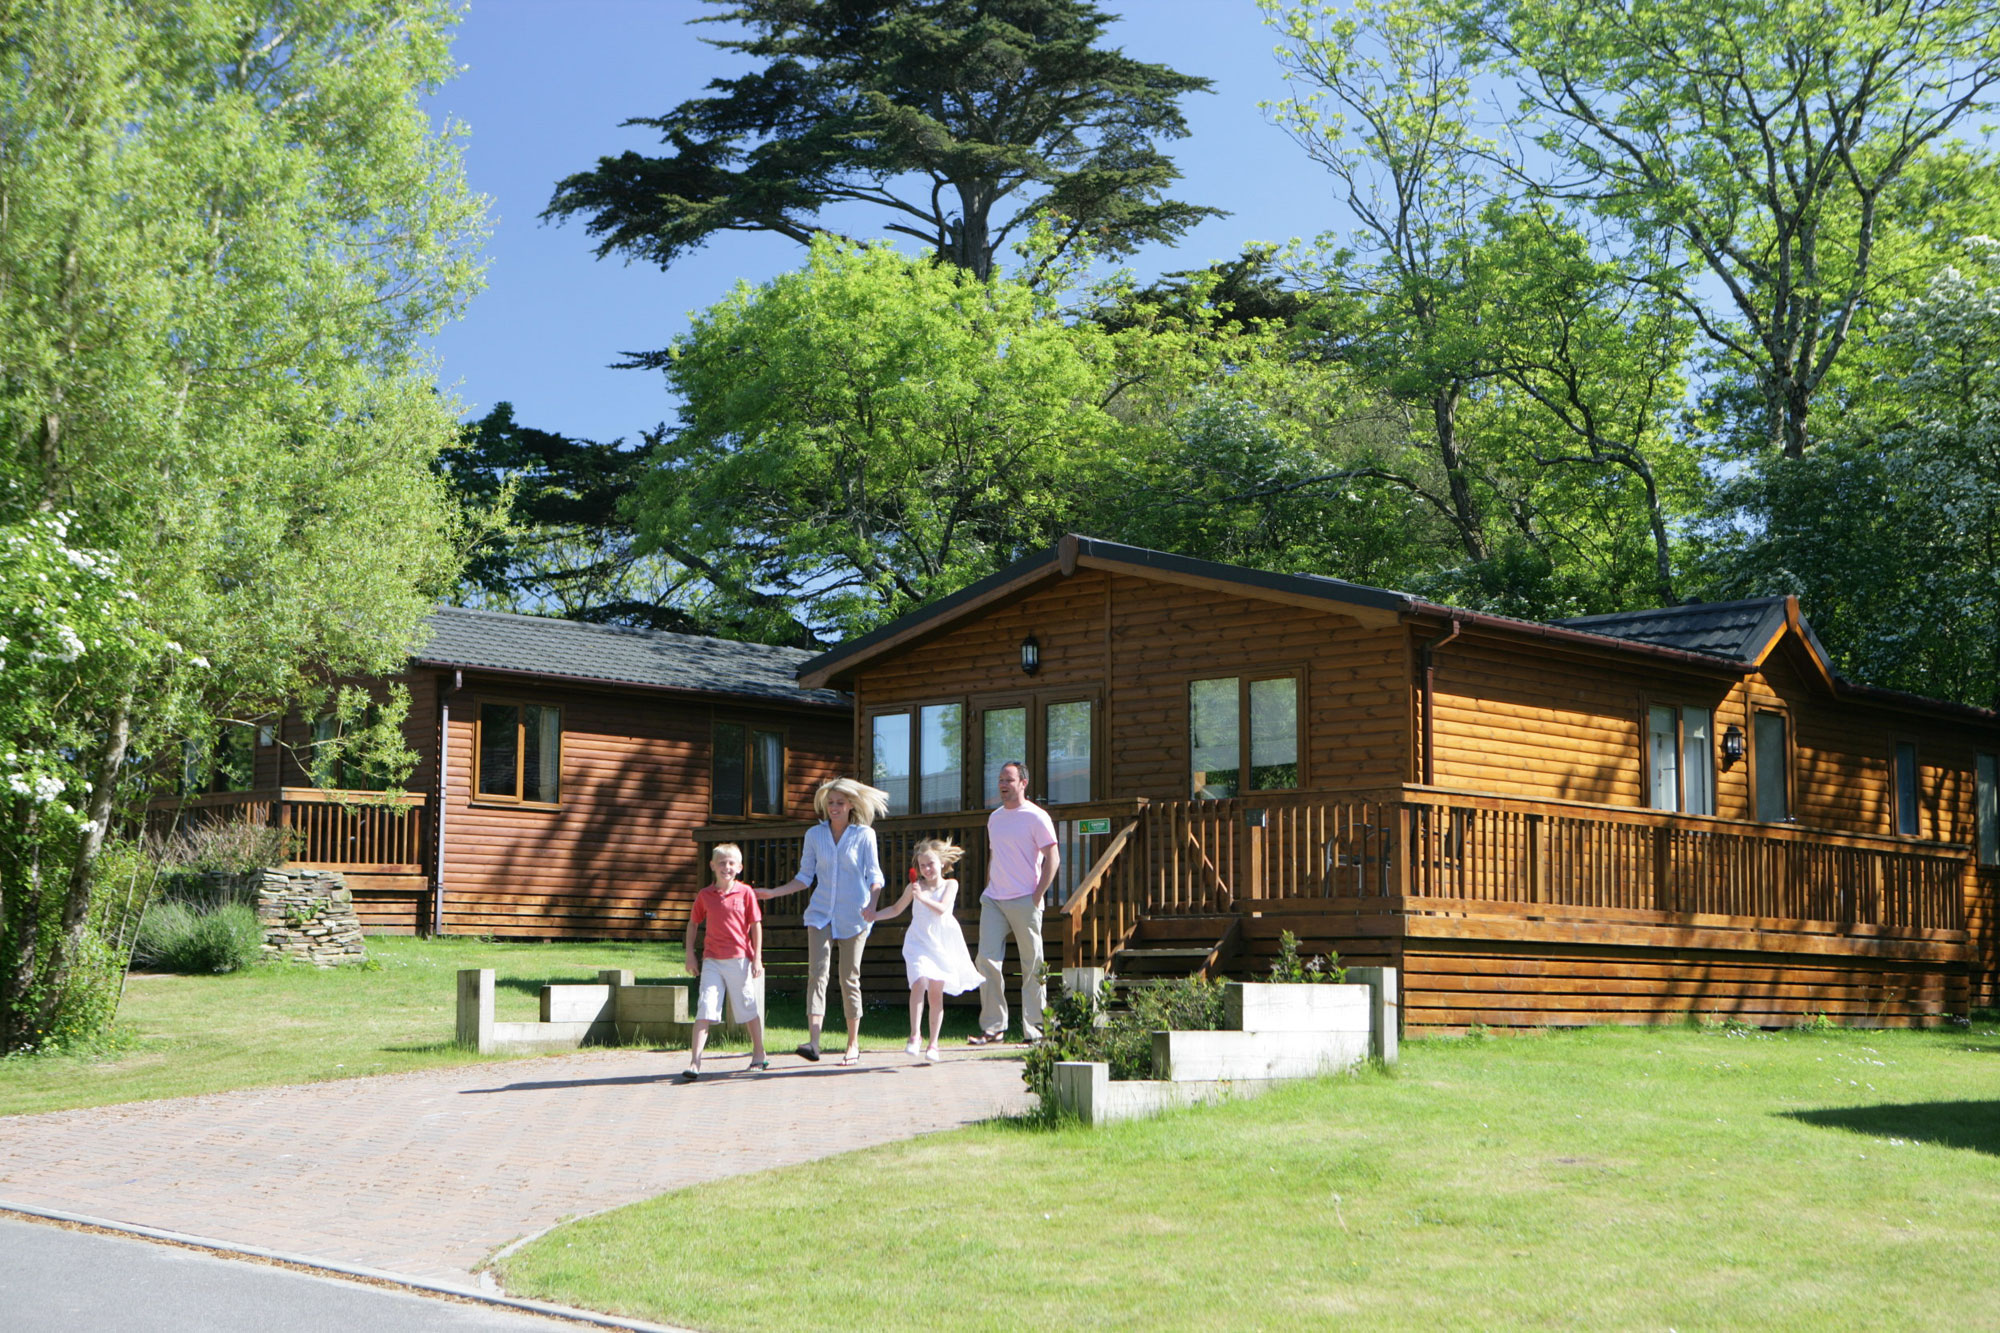 Luxury Holiday Lodges For Sale In The Uk